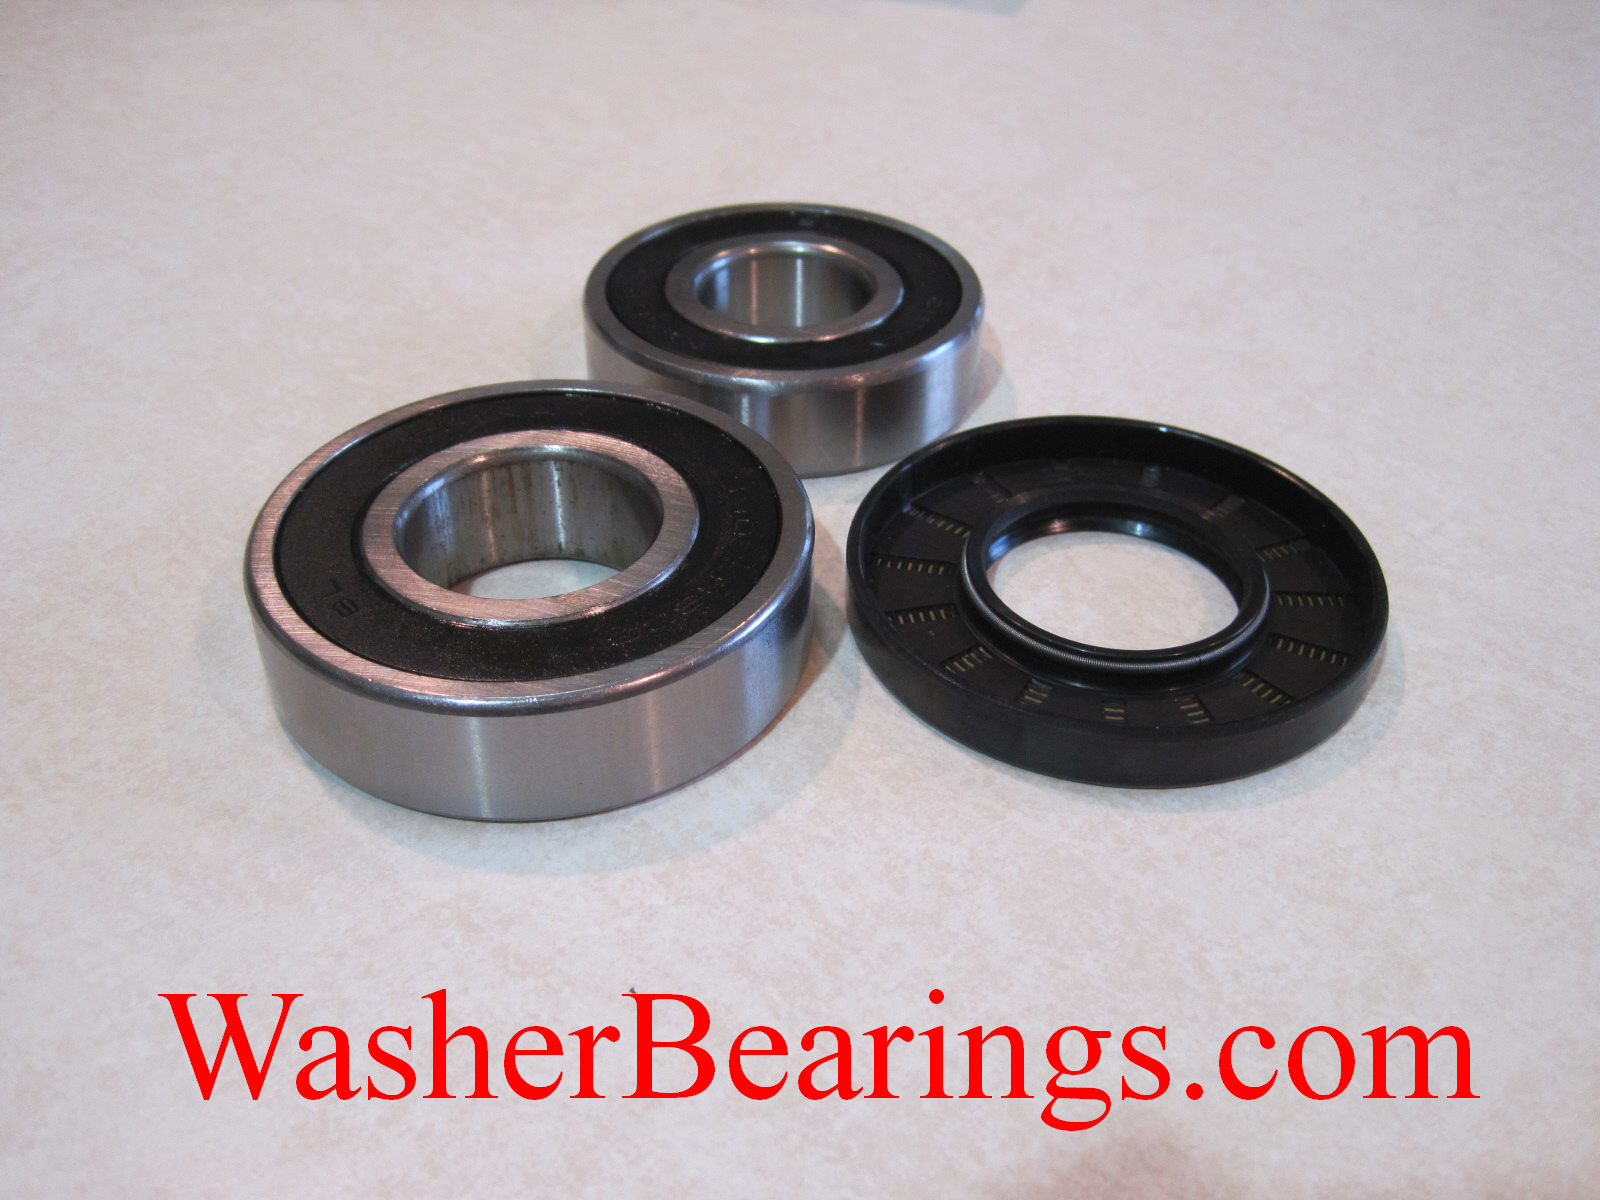 Frigidaire Washer Ftf530fs1 Bearing And Seal Kit